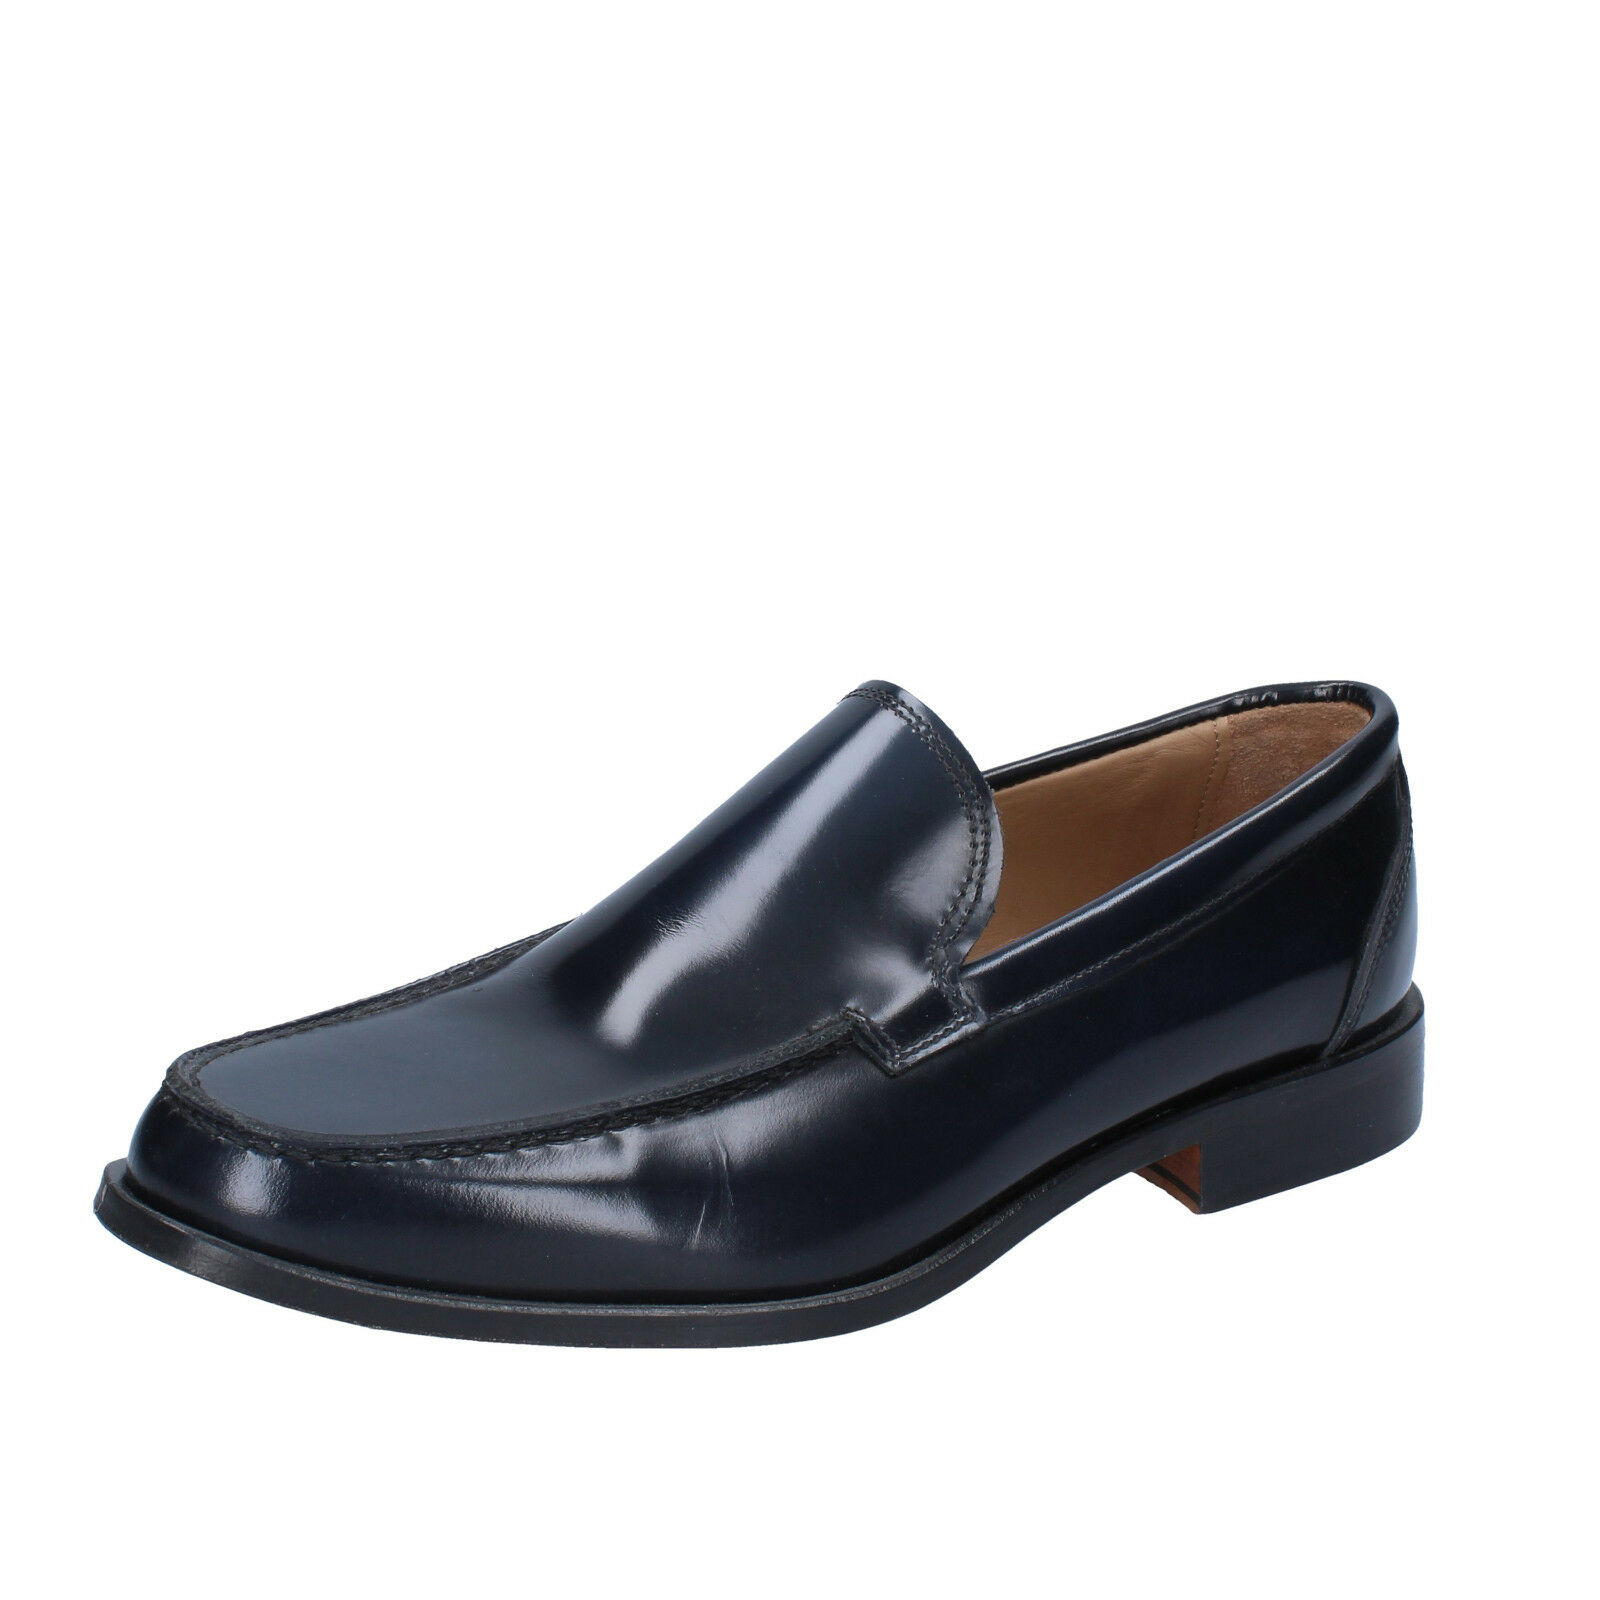 Mens shoes DI MELLA 6 (EU 40) loafers black shiny leather AB925-B